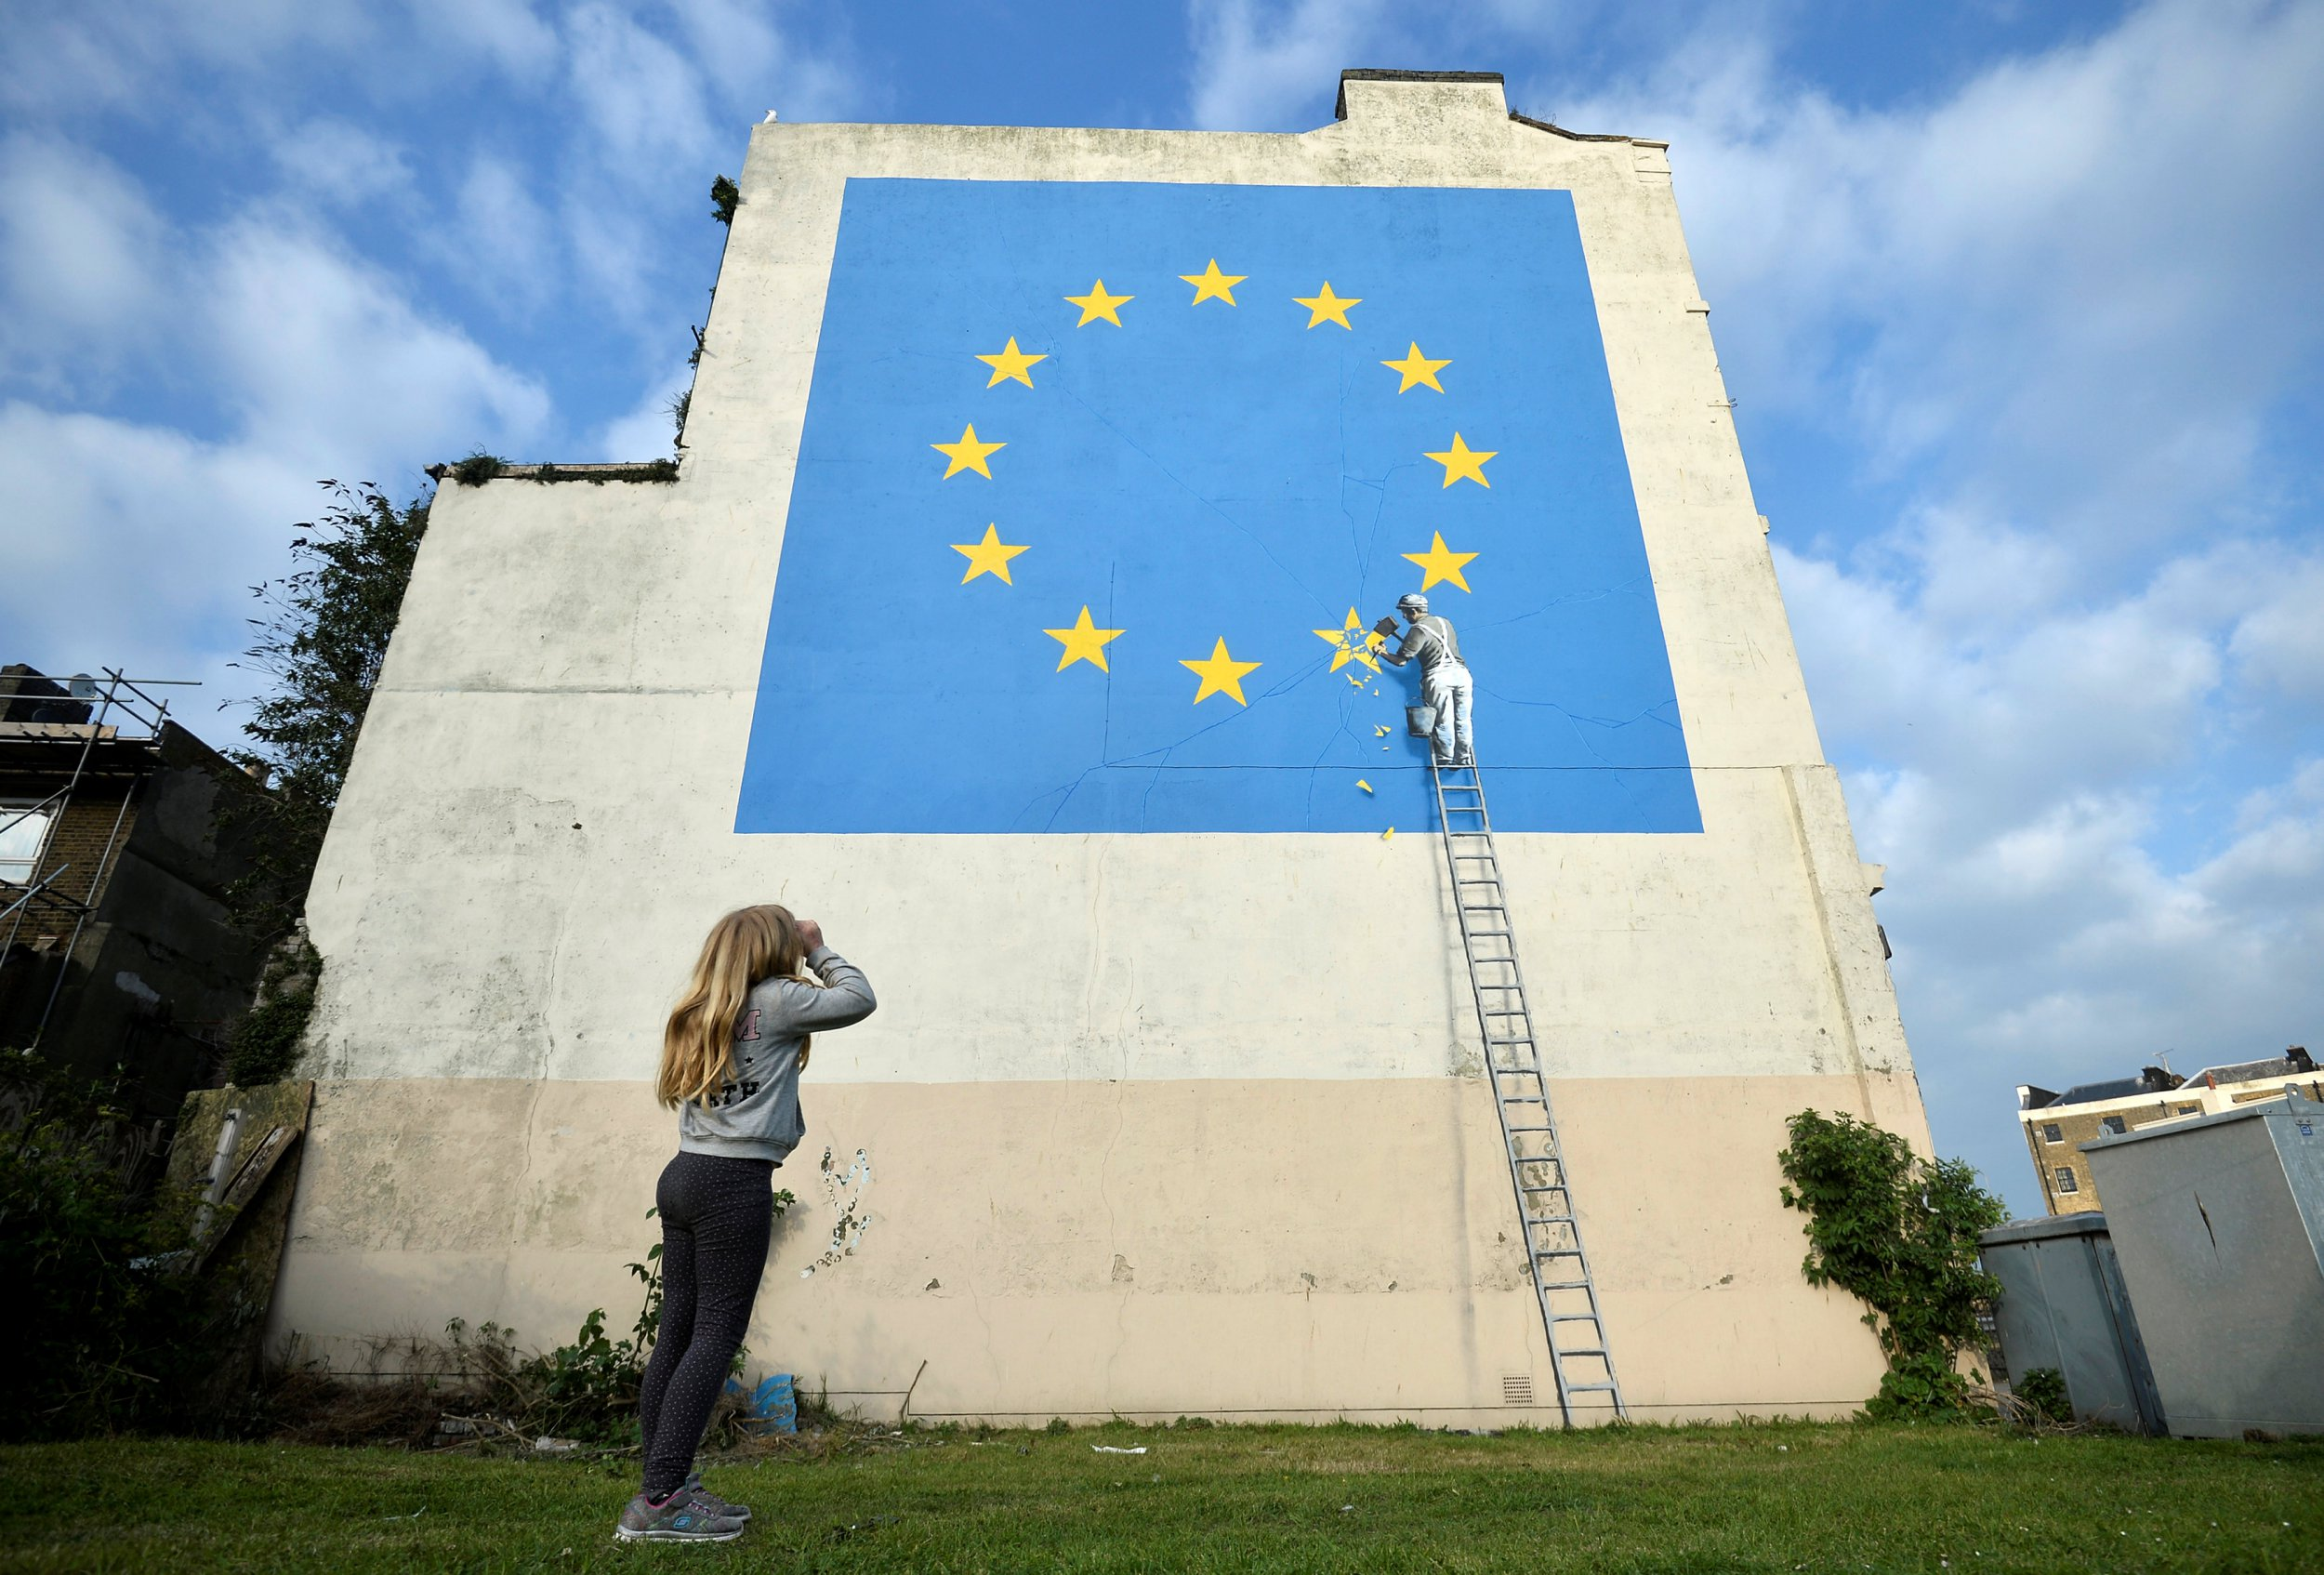 New Banksy piece shows workman chipping away at star on EU flag